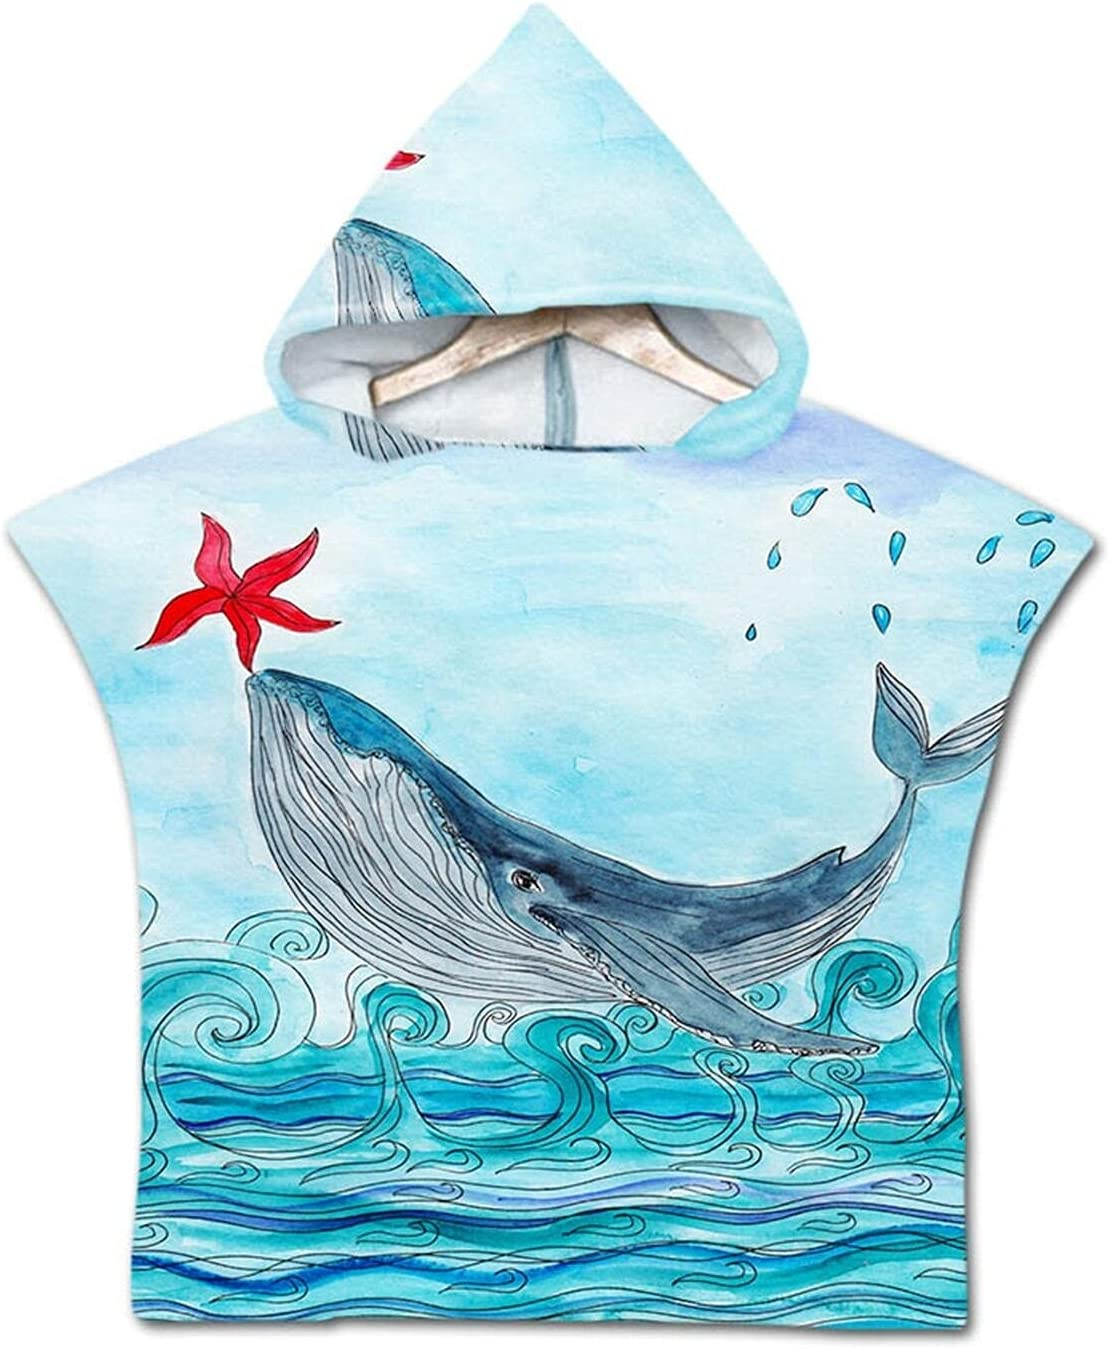 Genuine Free Shipping QIUMIN Summer Under The Max 67% OFF Sea Dolphin Whale Mermaid Fish B Octopus